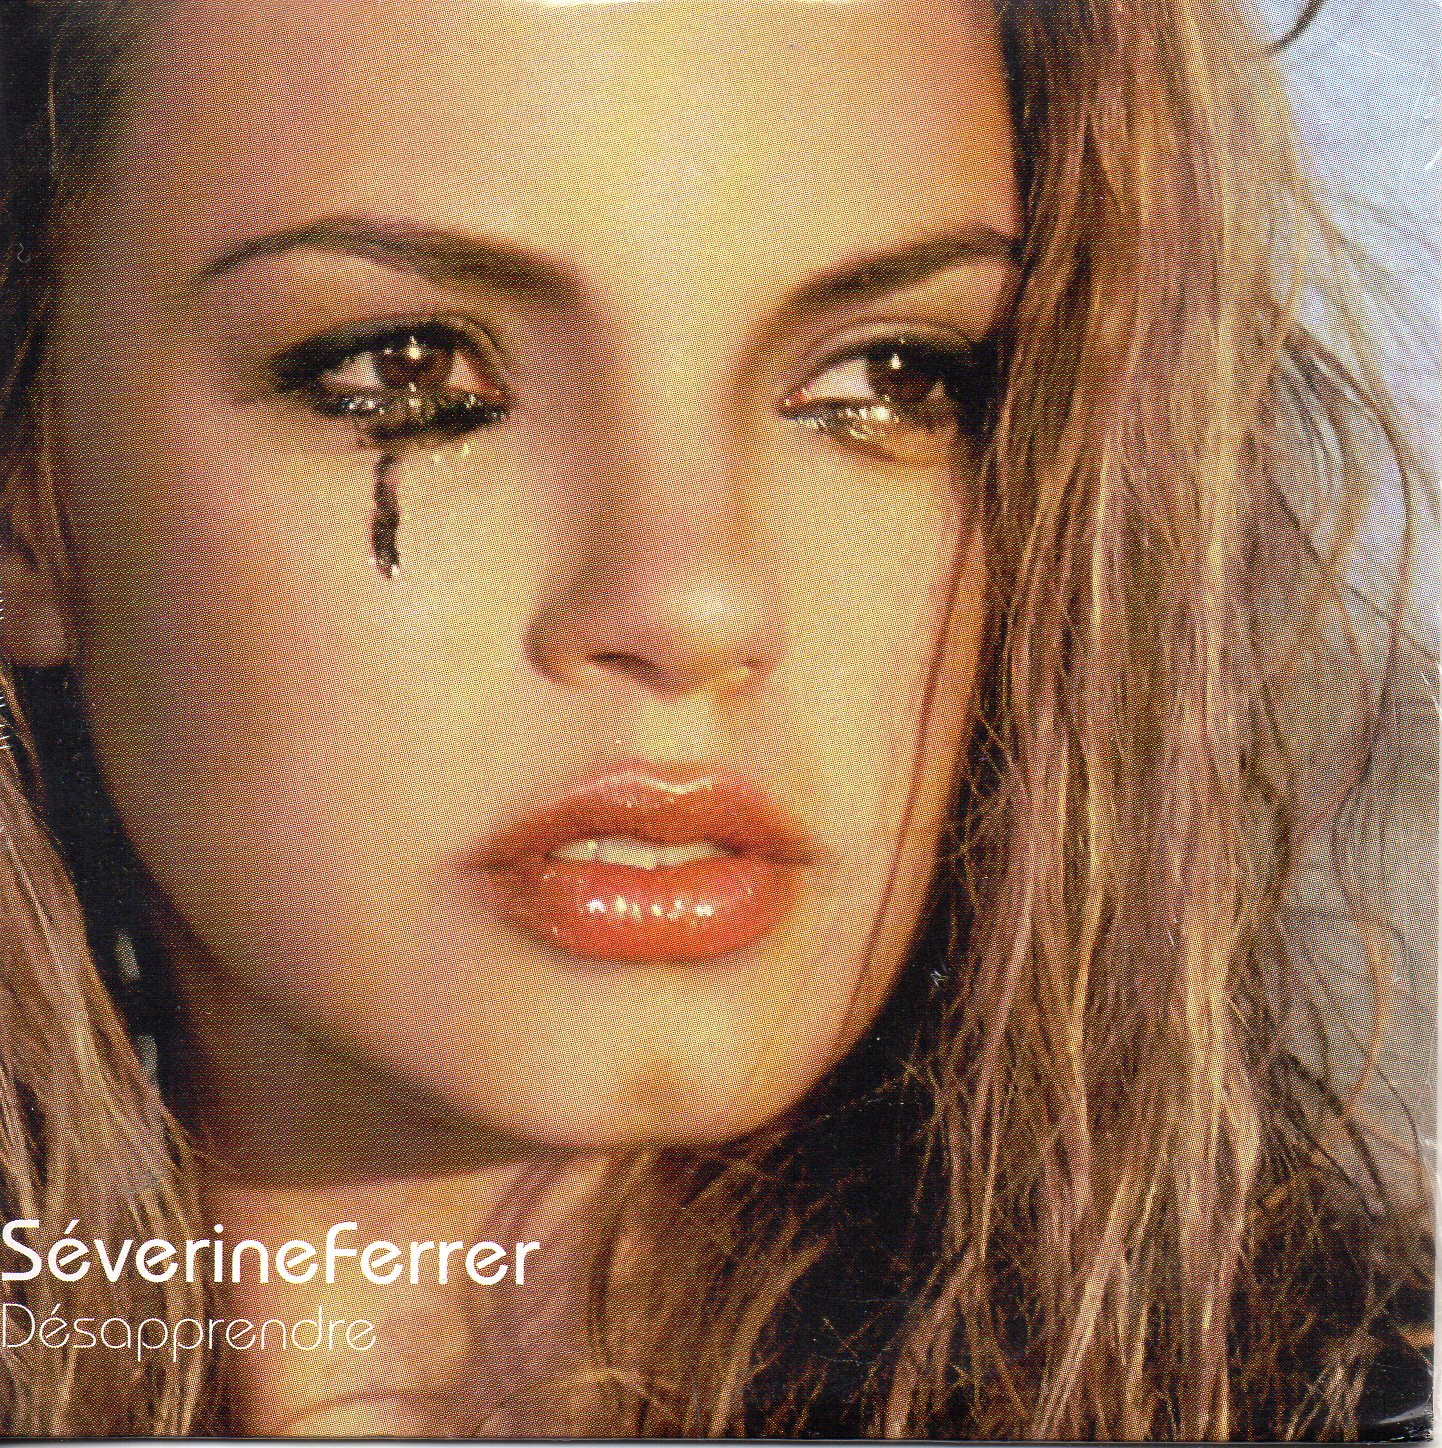 SÉVERINE FERRER - Désapprendre 2-track CARD SLEEVE - CD single